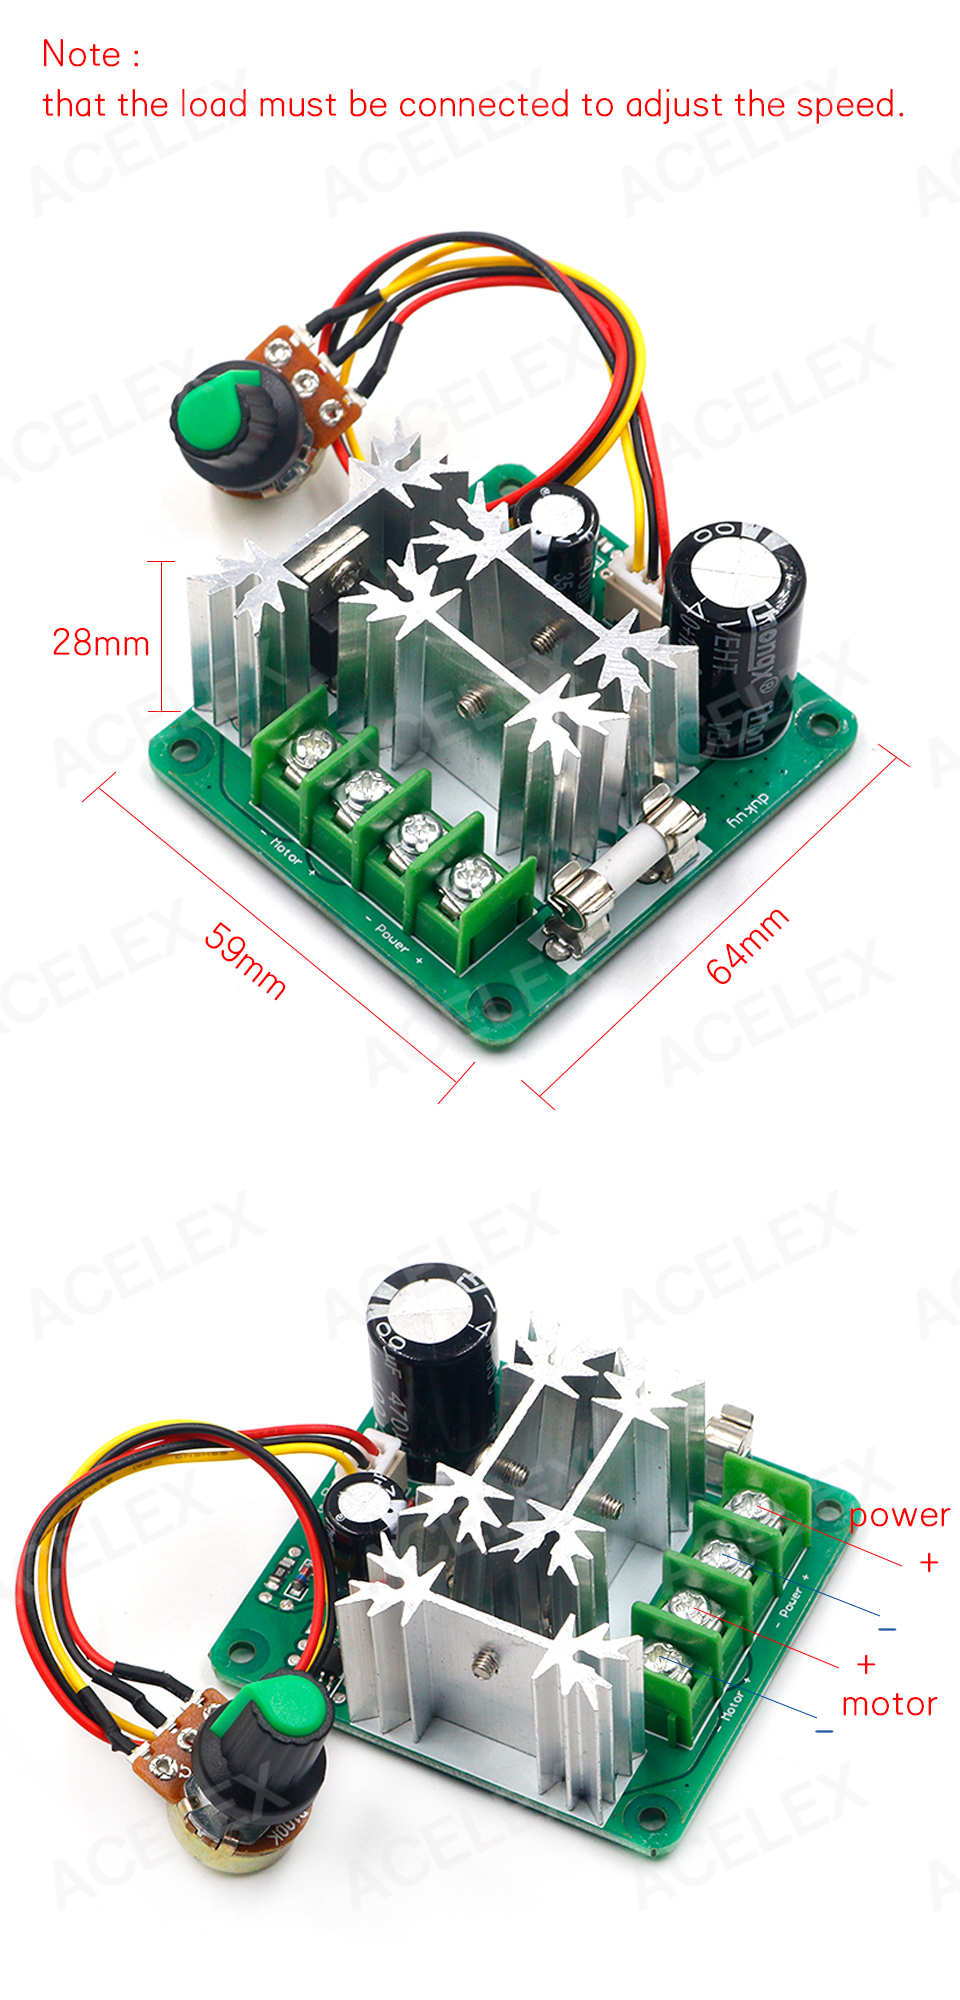 Hf48f7d77edd84834b1a26077f50ce53ex - DC 6V-90V 15A DC Motor Speed Controller Stepless Speed Regulation Pulse Width PWM DC 12V 24V 36V 48V 1000W